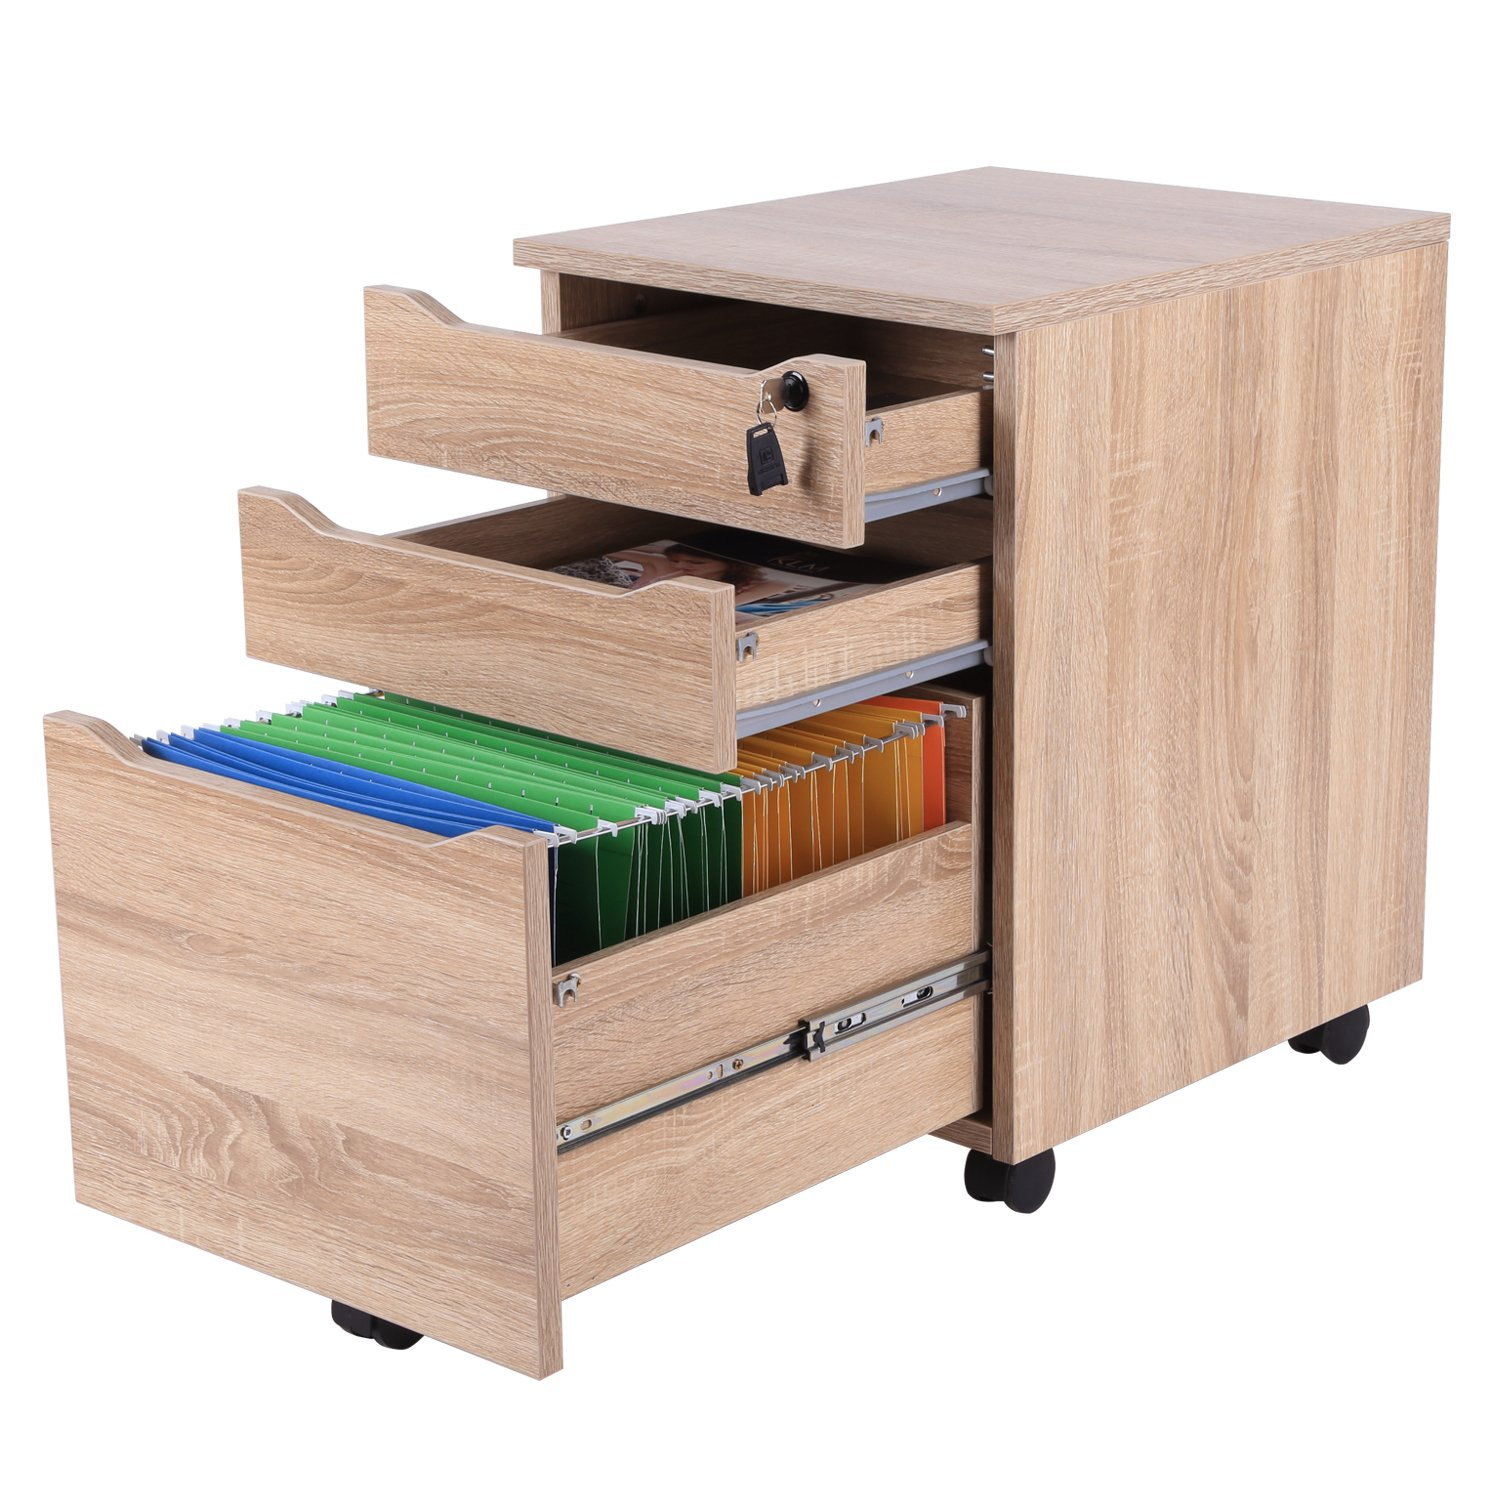 Decho 3 Drawer Wood Mobile File Cabinet Fully Assembled Except Casters,Letter Size/A4,OAK